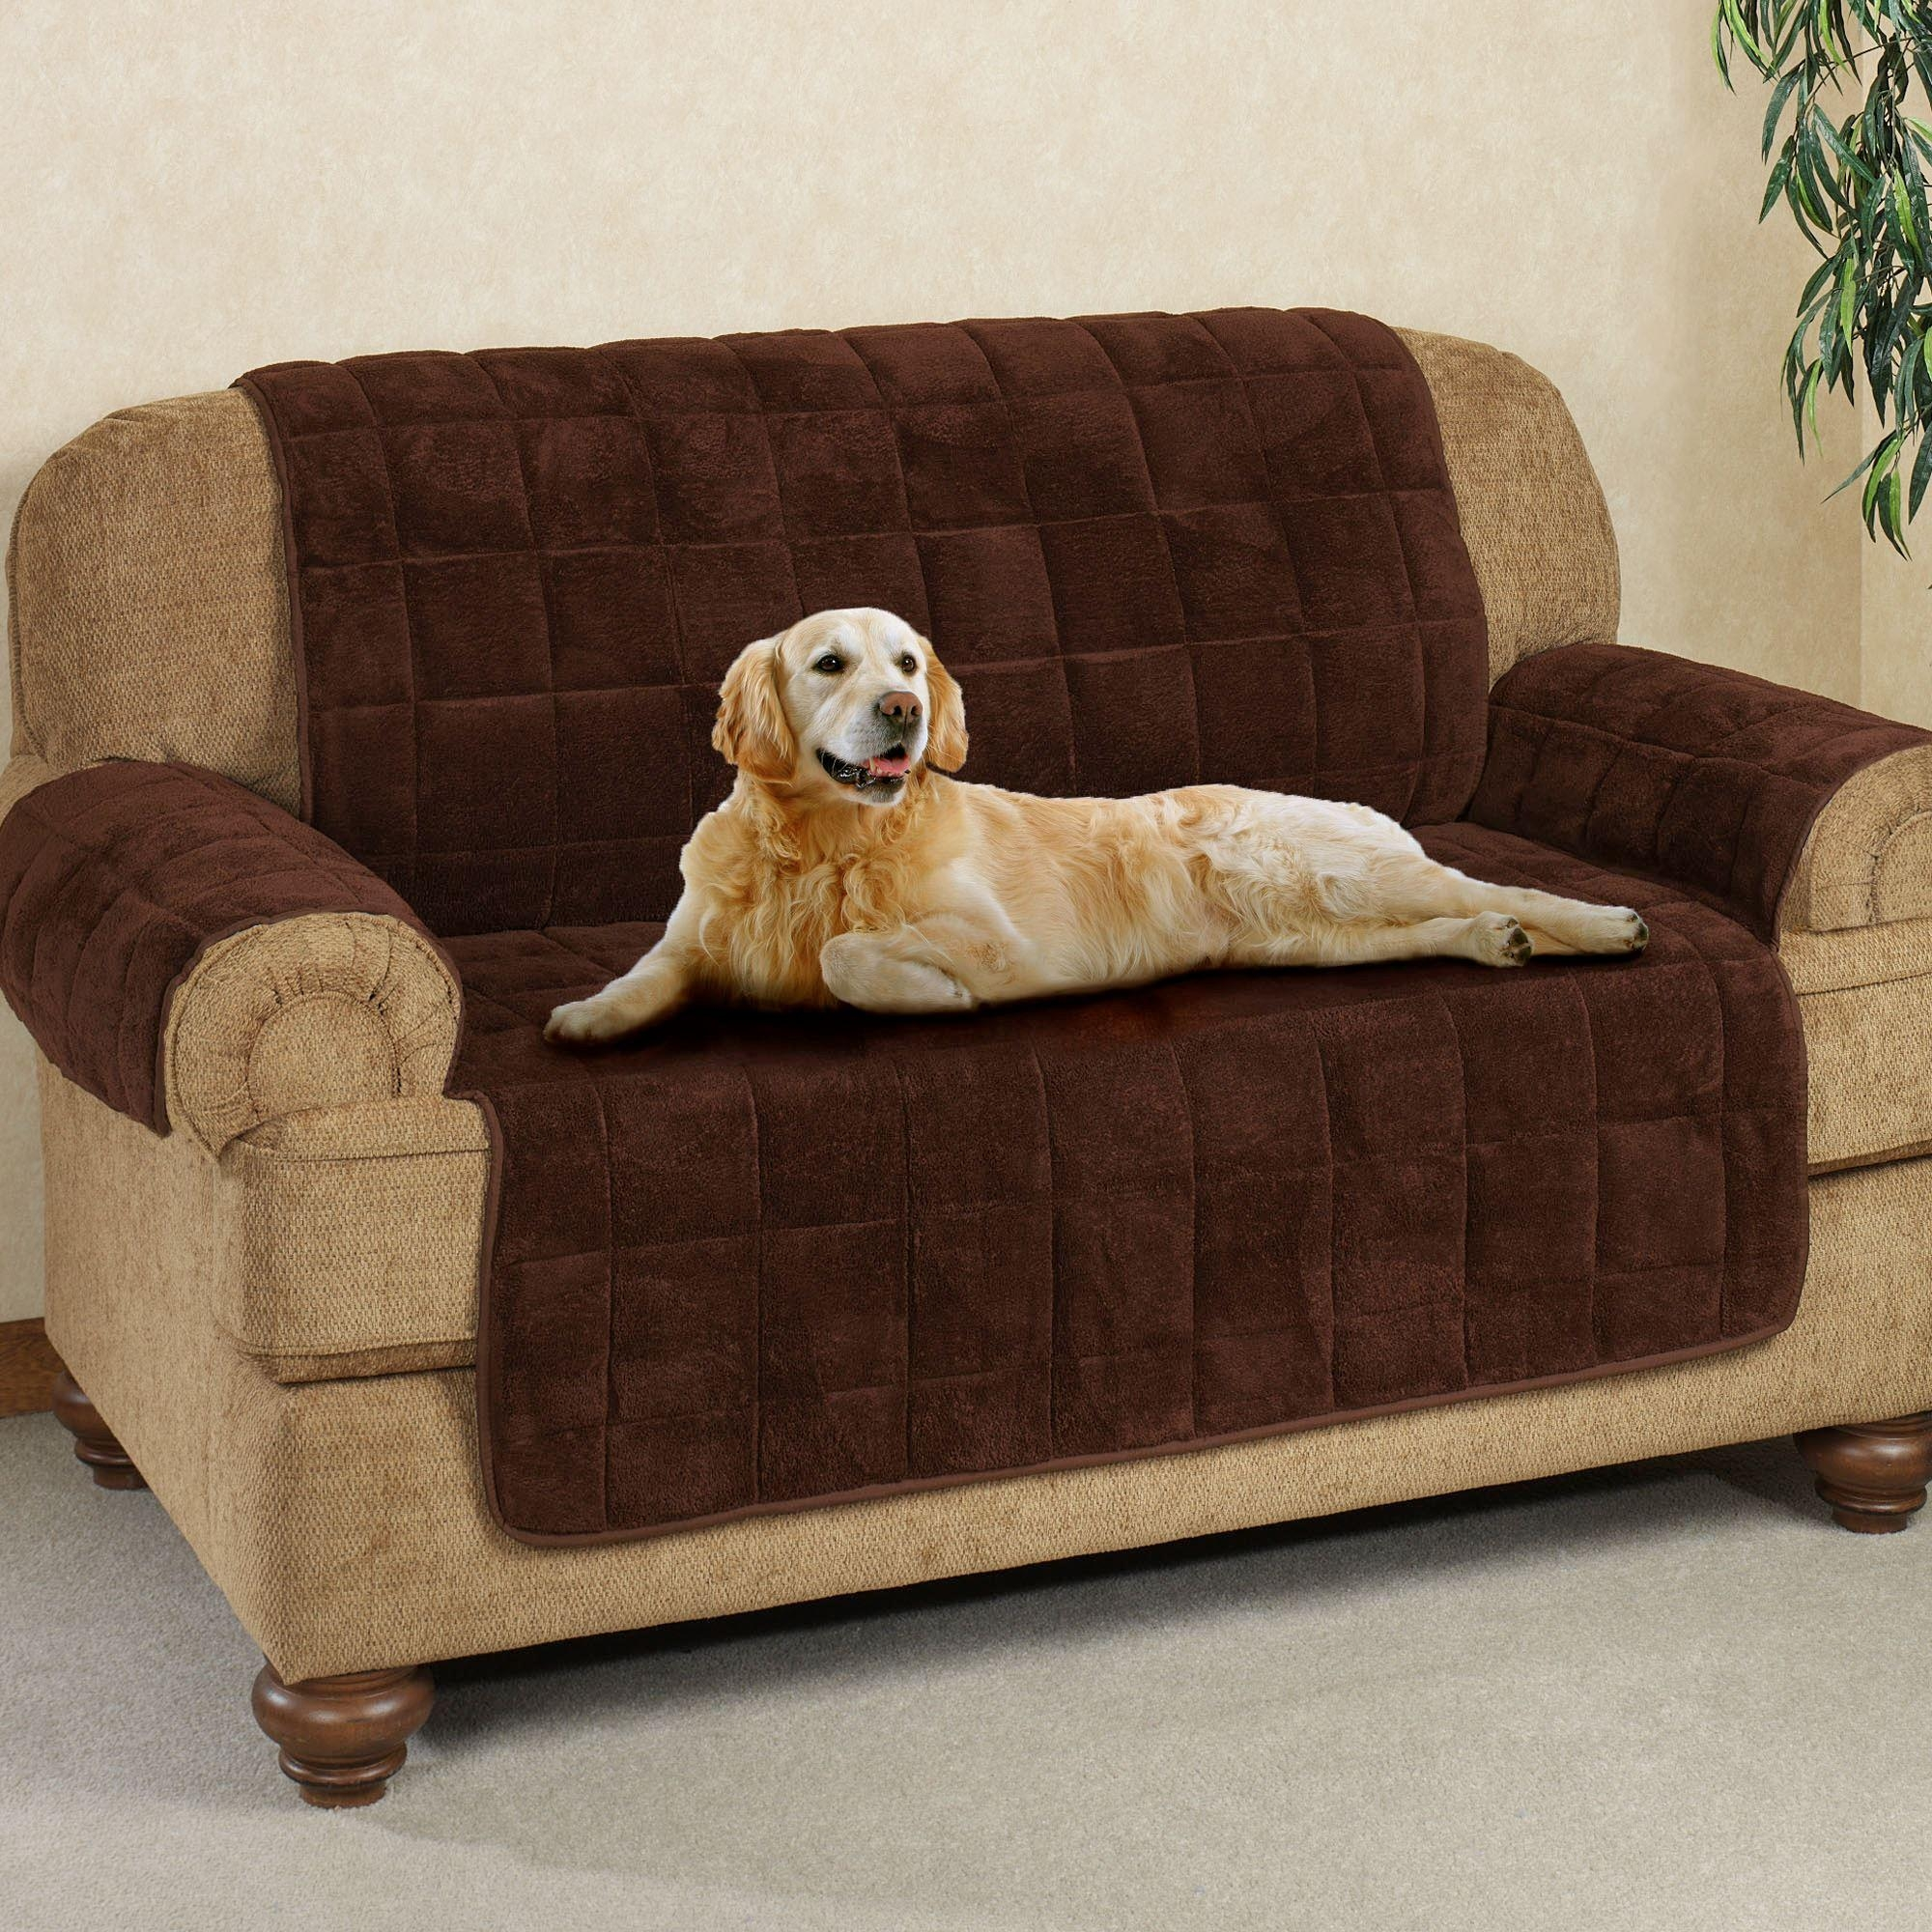 Furniture Covers, Pet Covers, Furniture Protectors   Touch Of Class Throughout Dog Sofas And Chairs (Image 10 of 20)